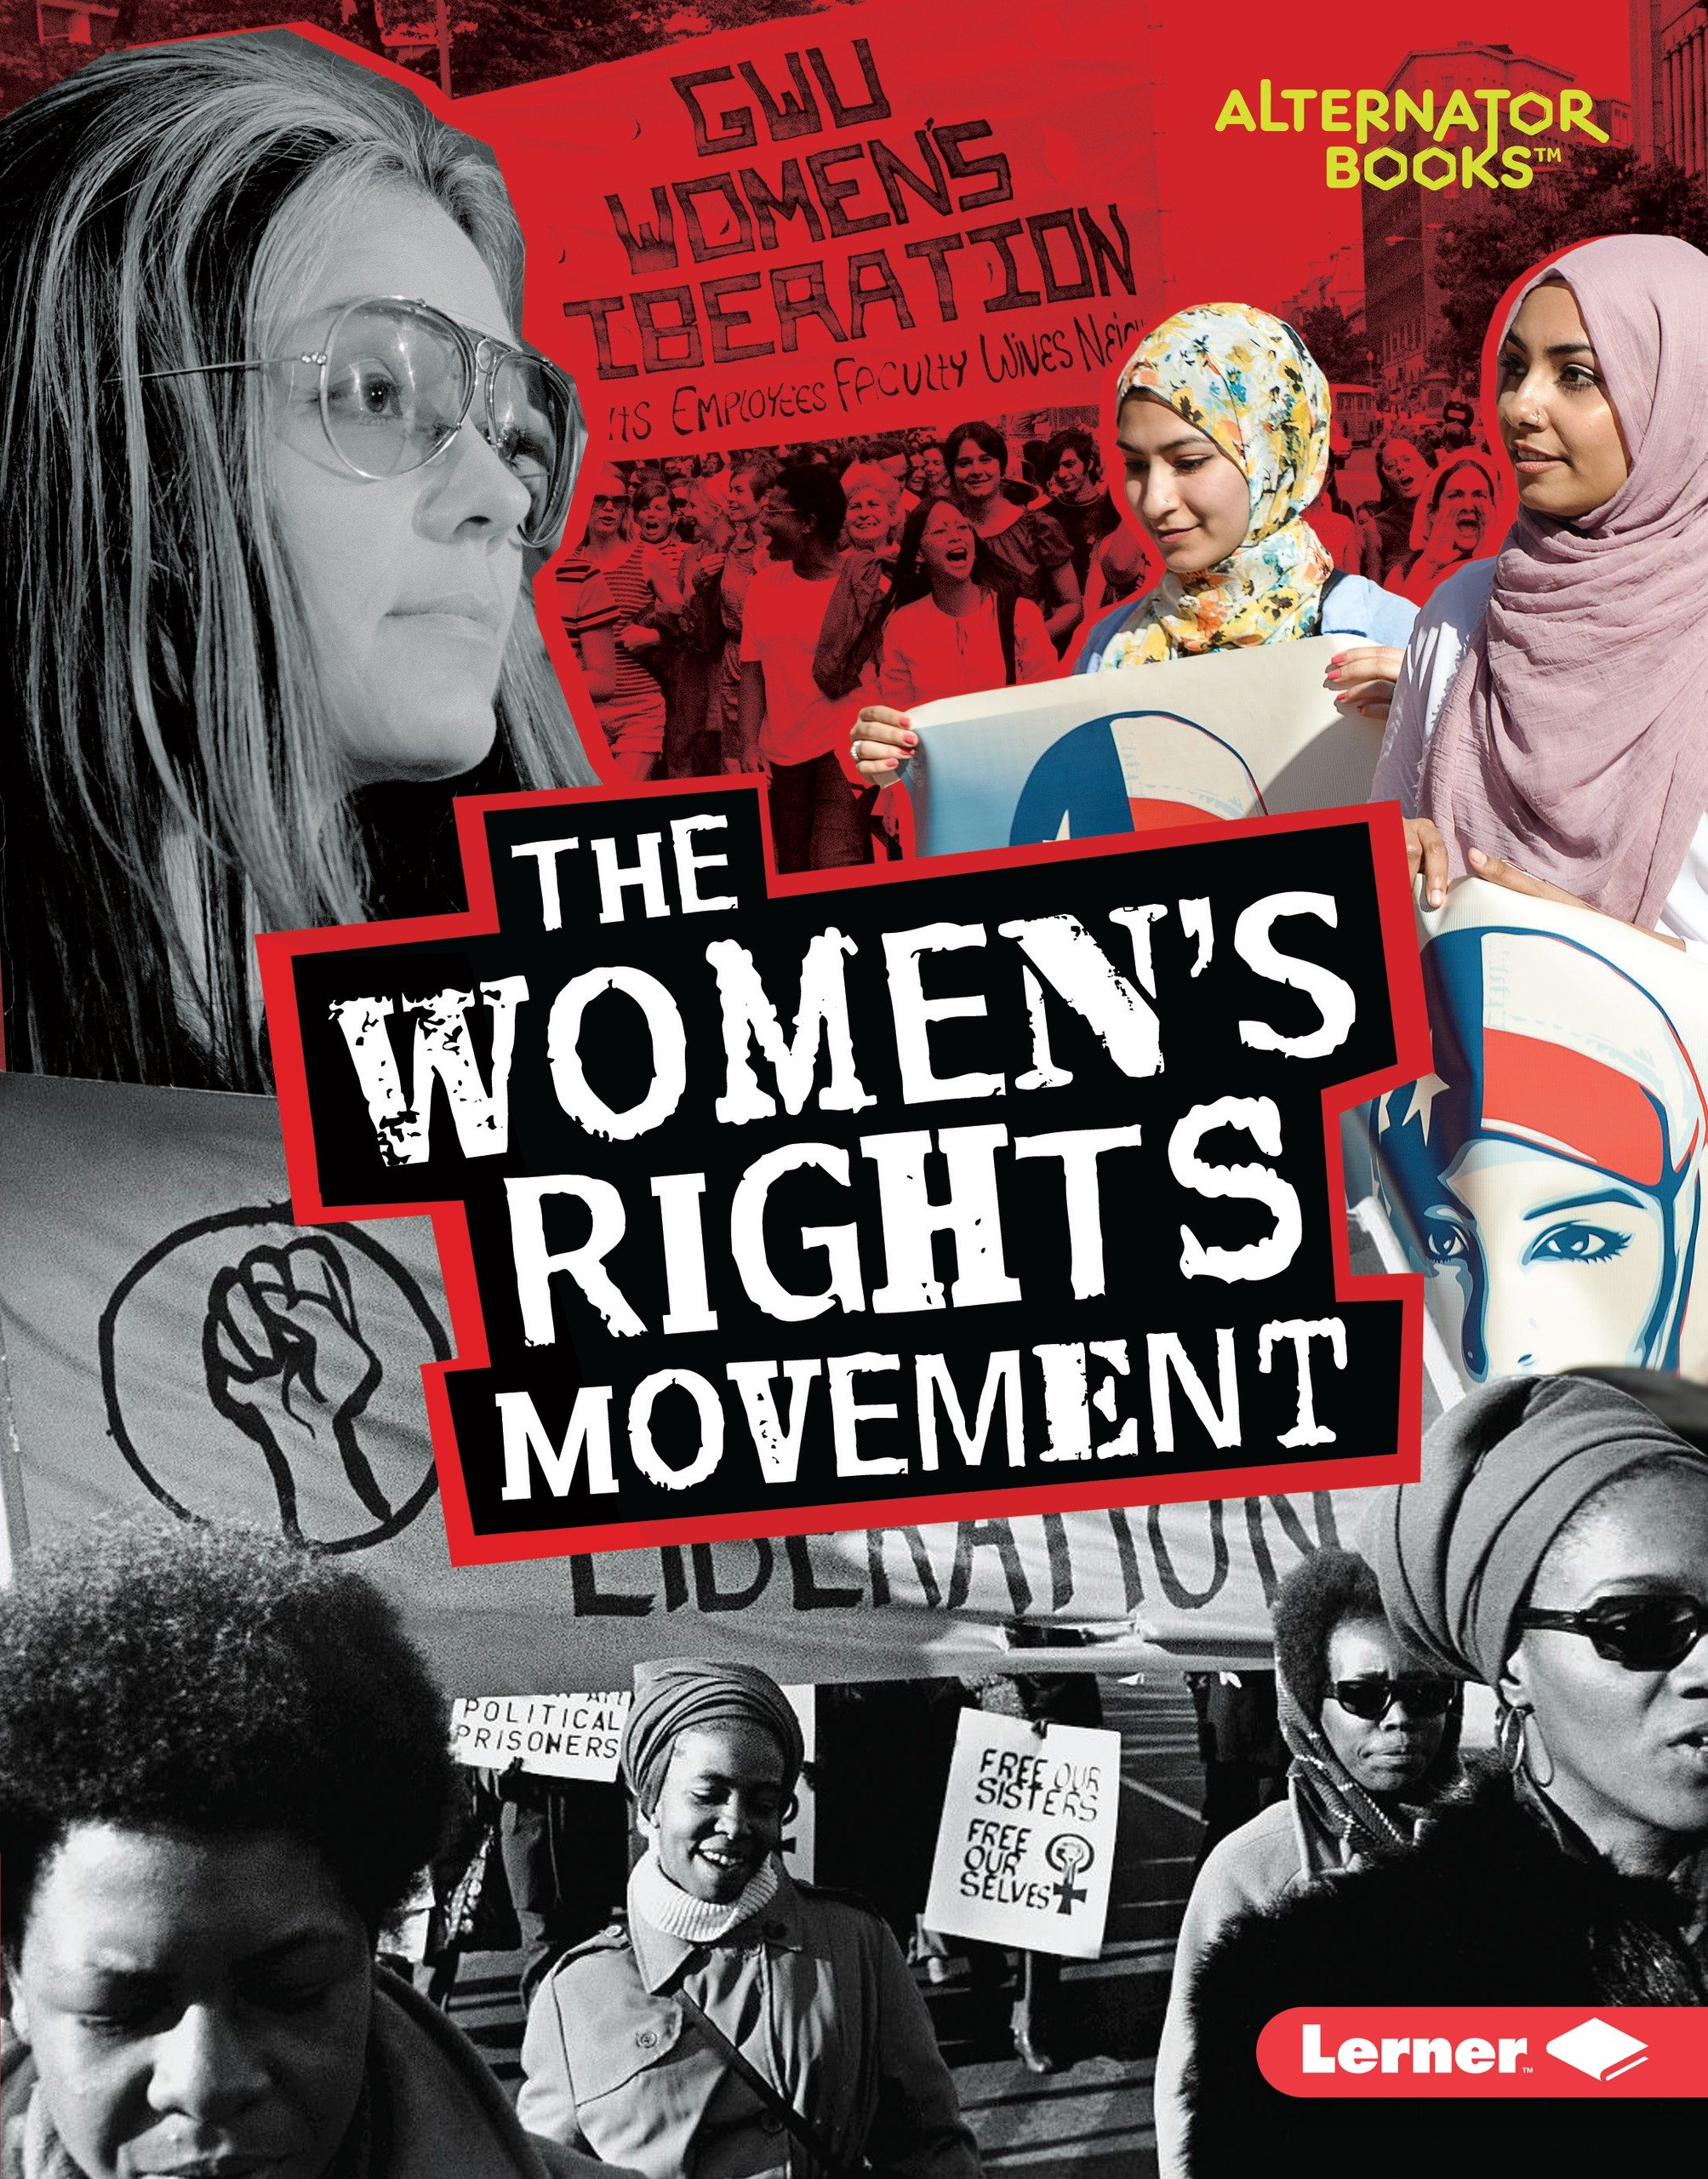 The Women's Rights Movement (Movements That Matter (Alternator Books))